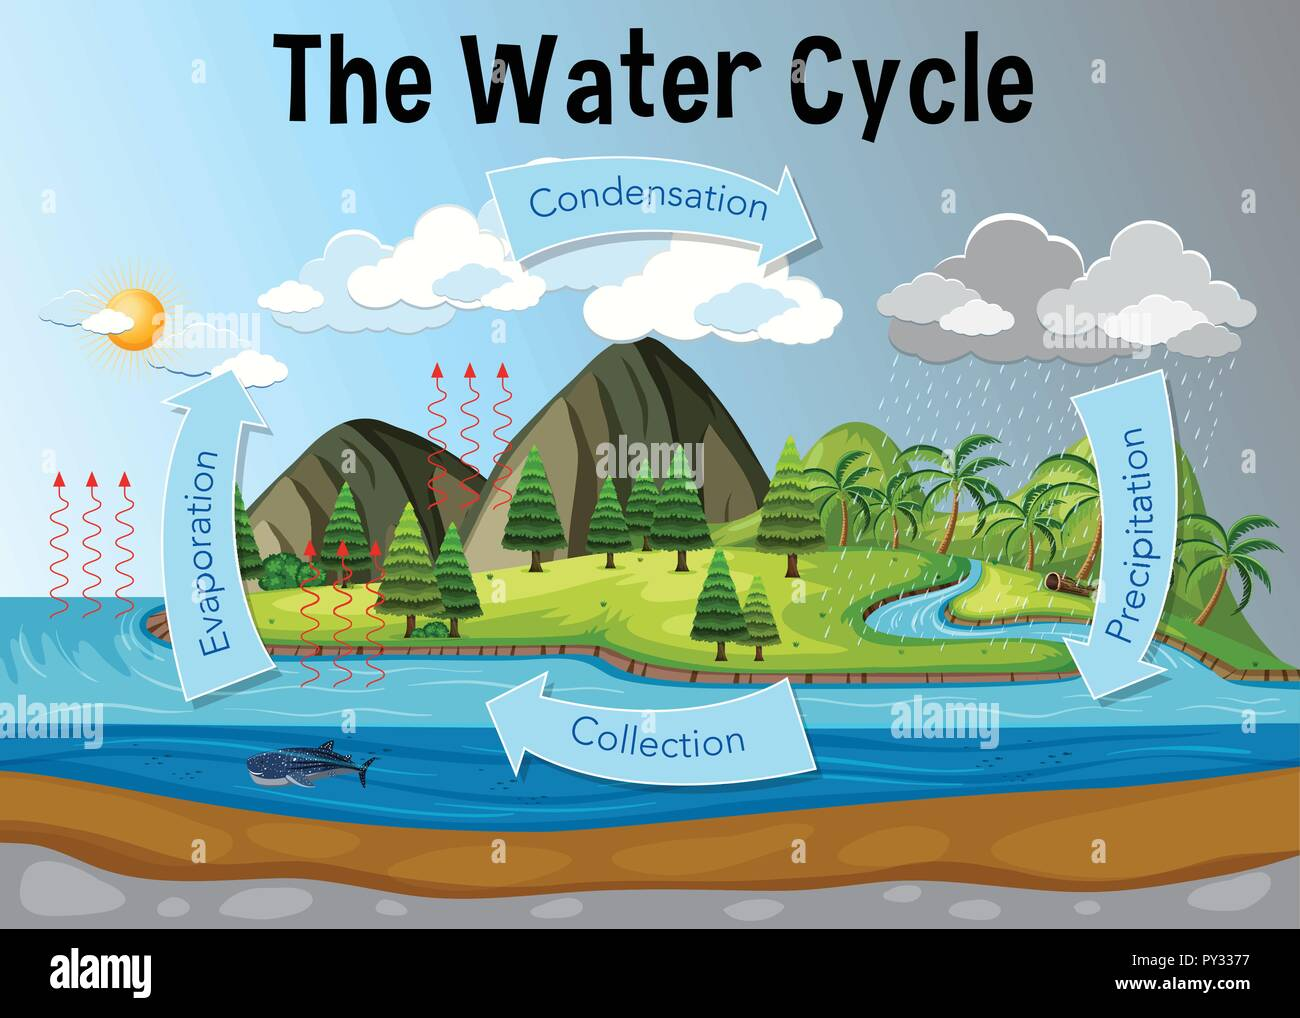 Water Cycle Diagram Stock Photos Amp Water Cycle Diagram